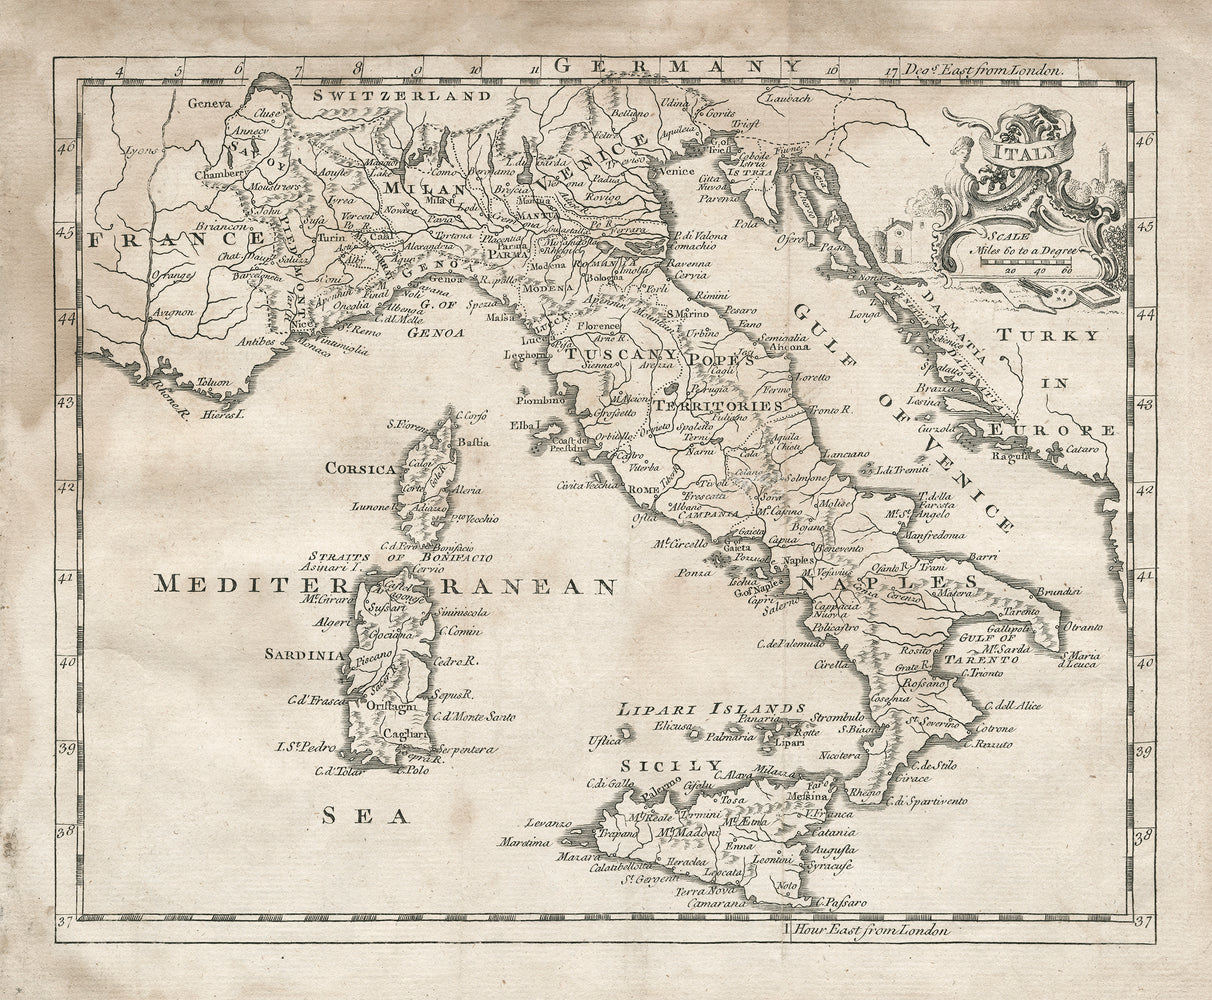 1764 Map of Italy